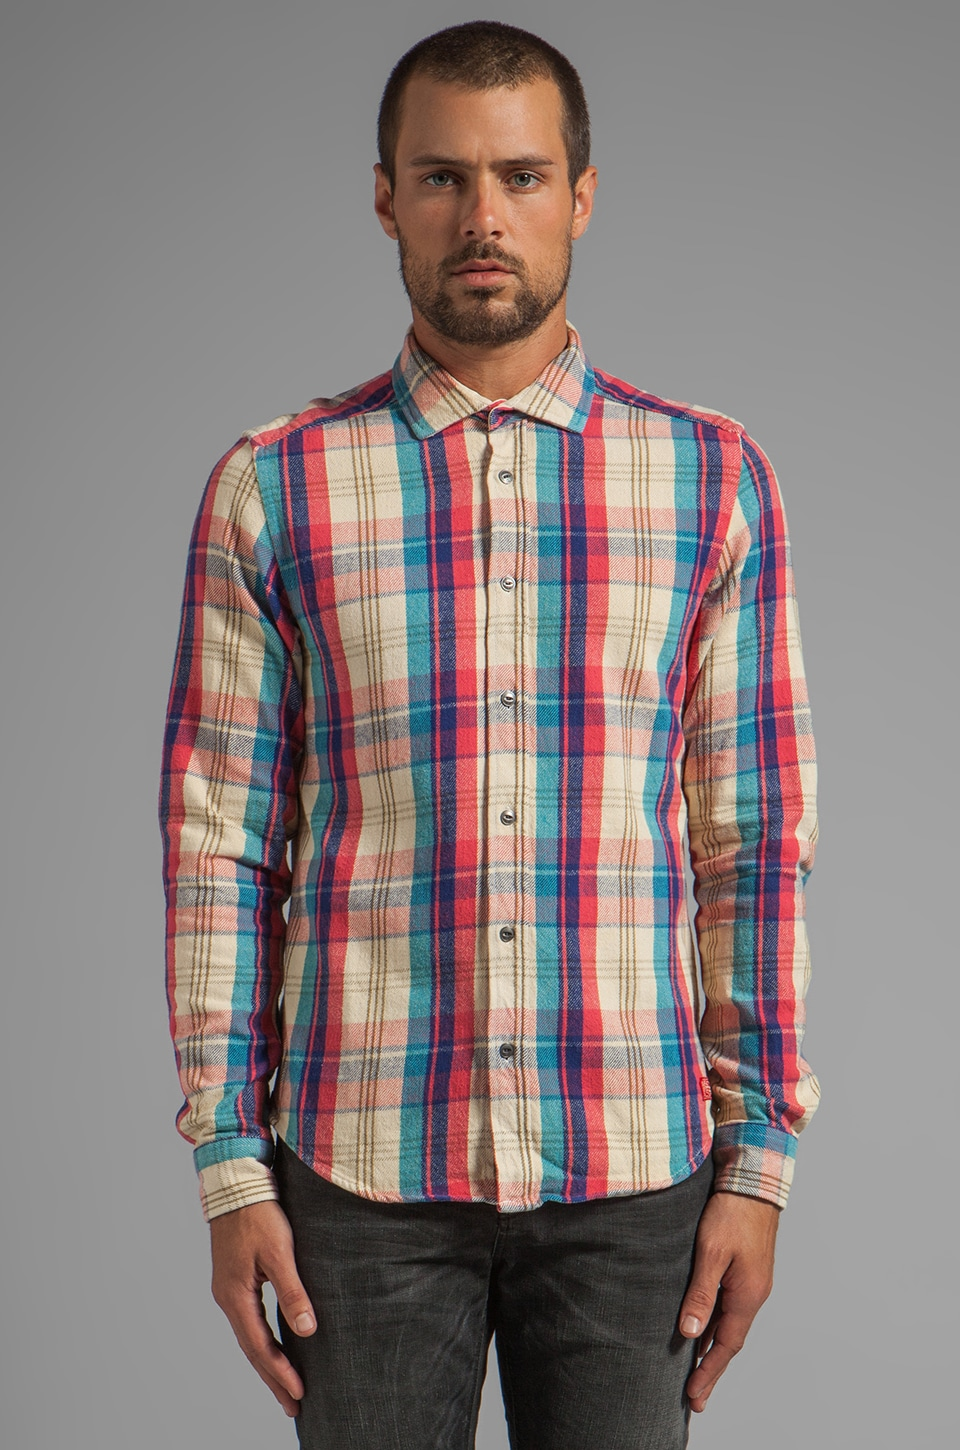 Scotch & Soda Long Sleeve Dress Flannel Shirt in Red/Blue